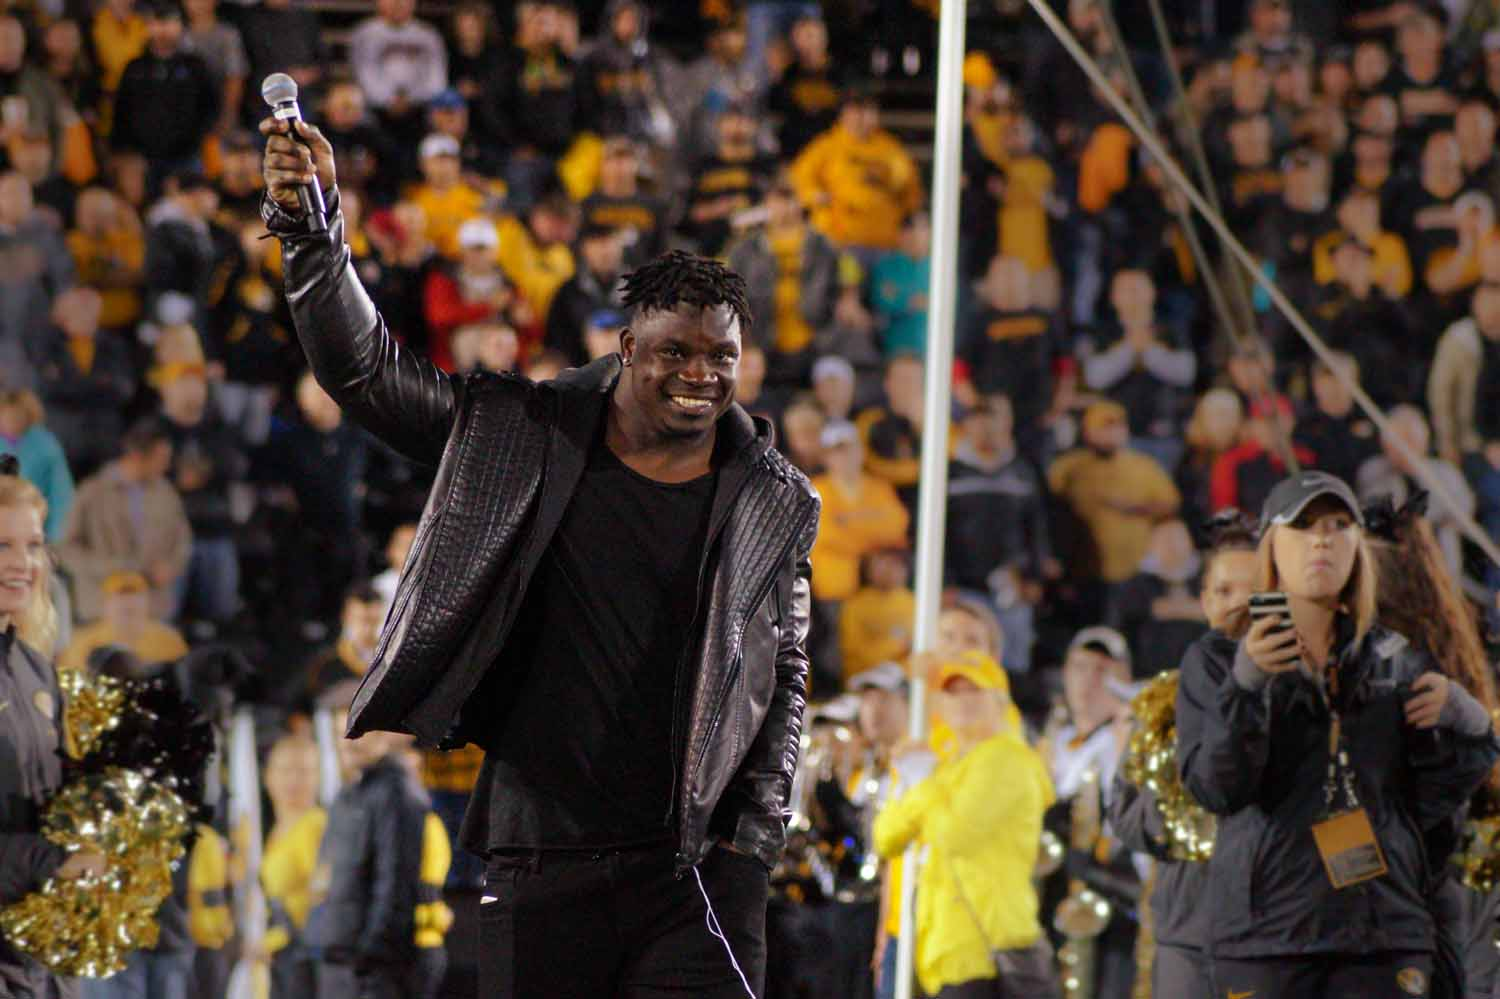 Sean Weatherspoon, LB for the Arizona Cardinals, and Mizzou Alumni starts an MIZ-ZOU chant with the crowd. Photo by Allison Collins.